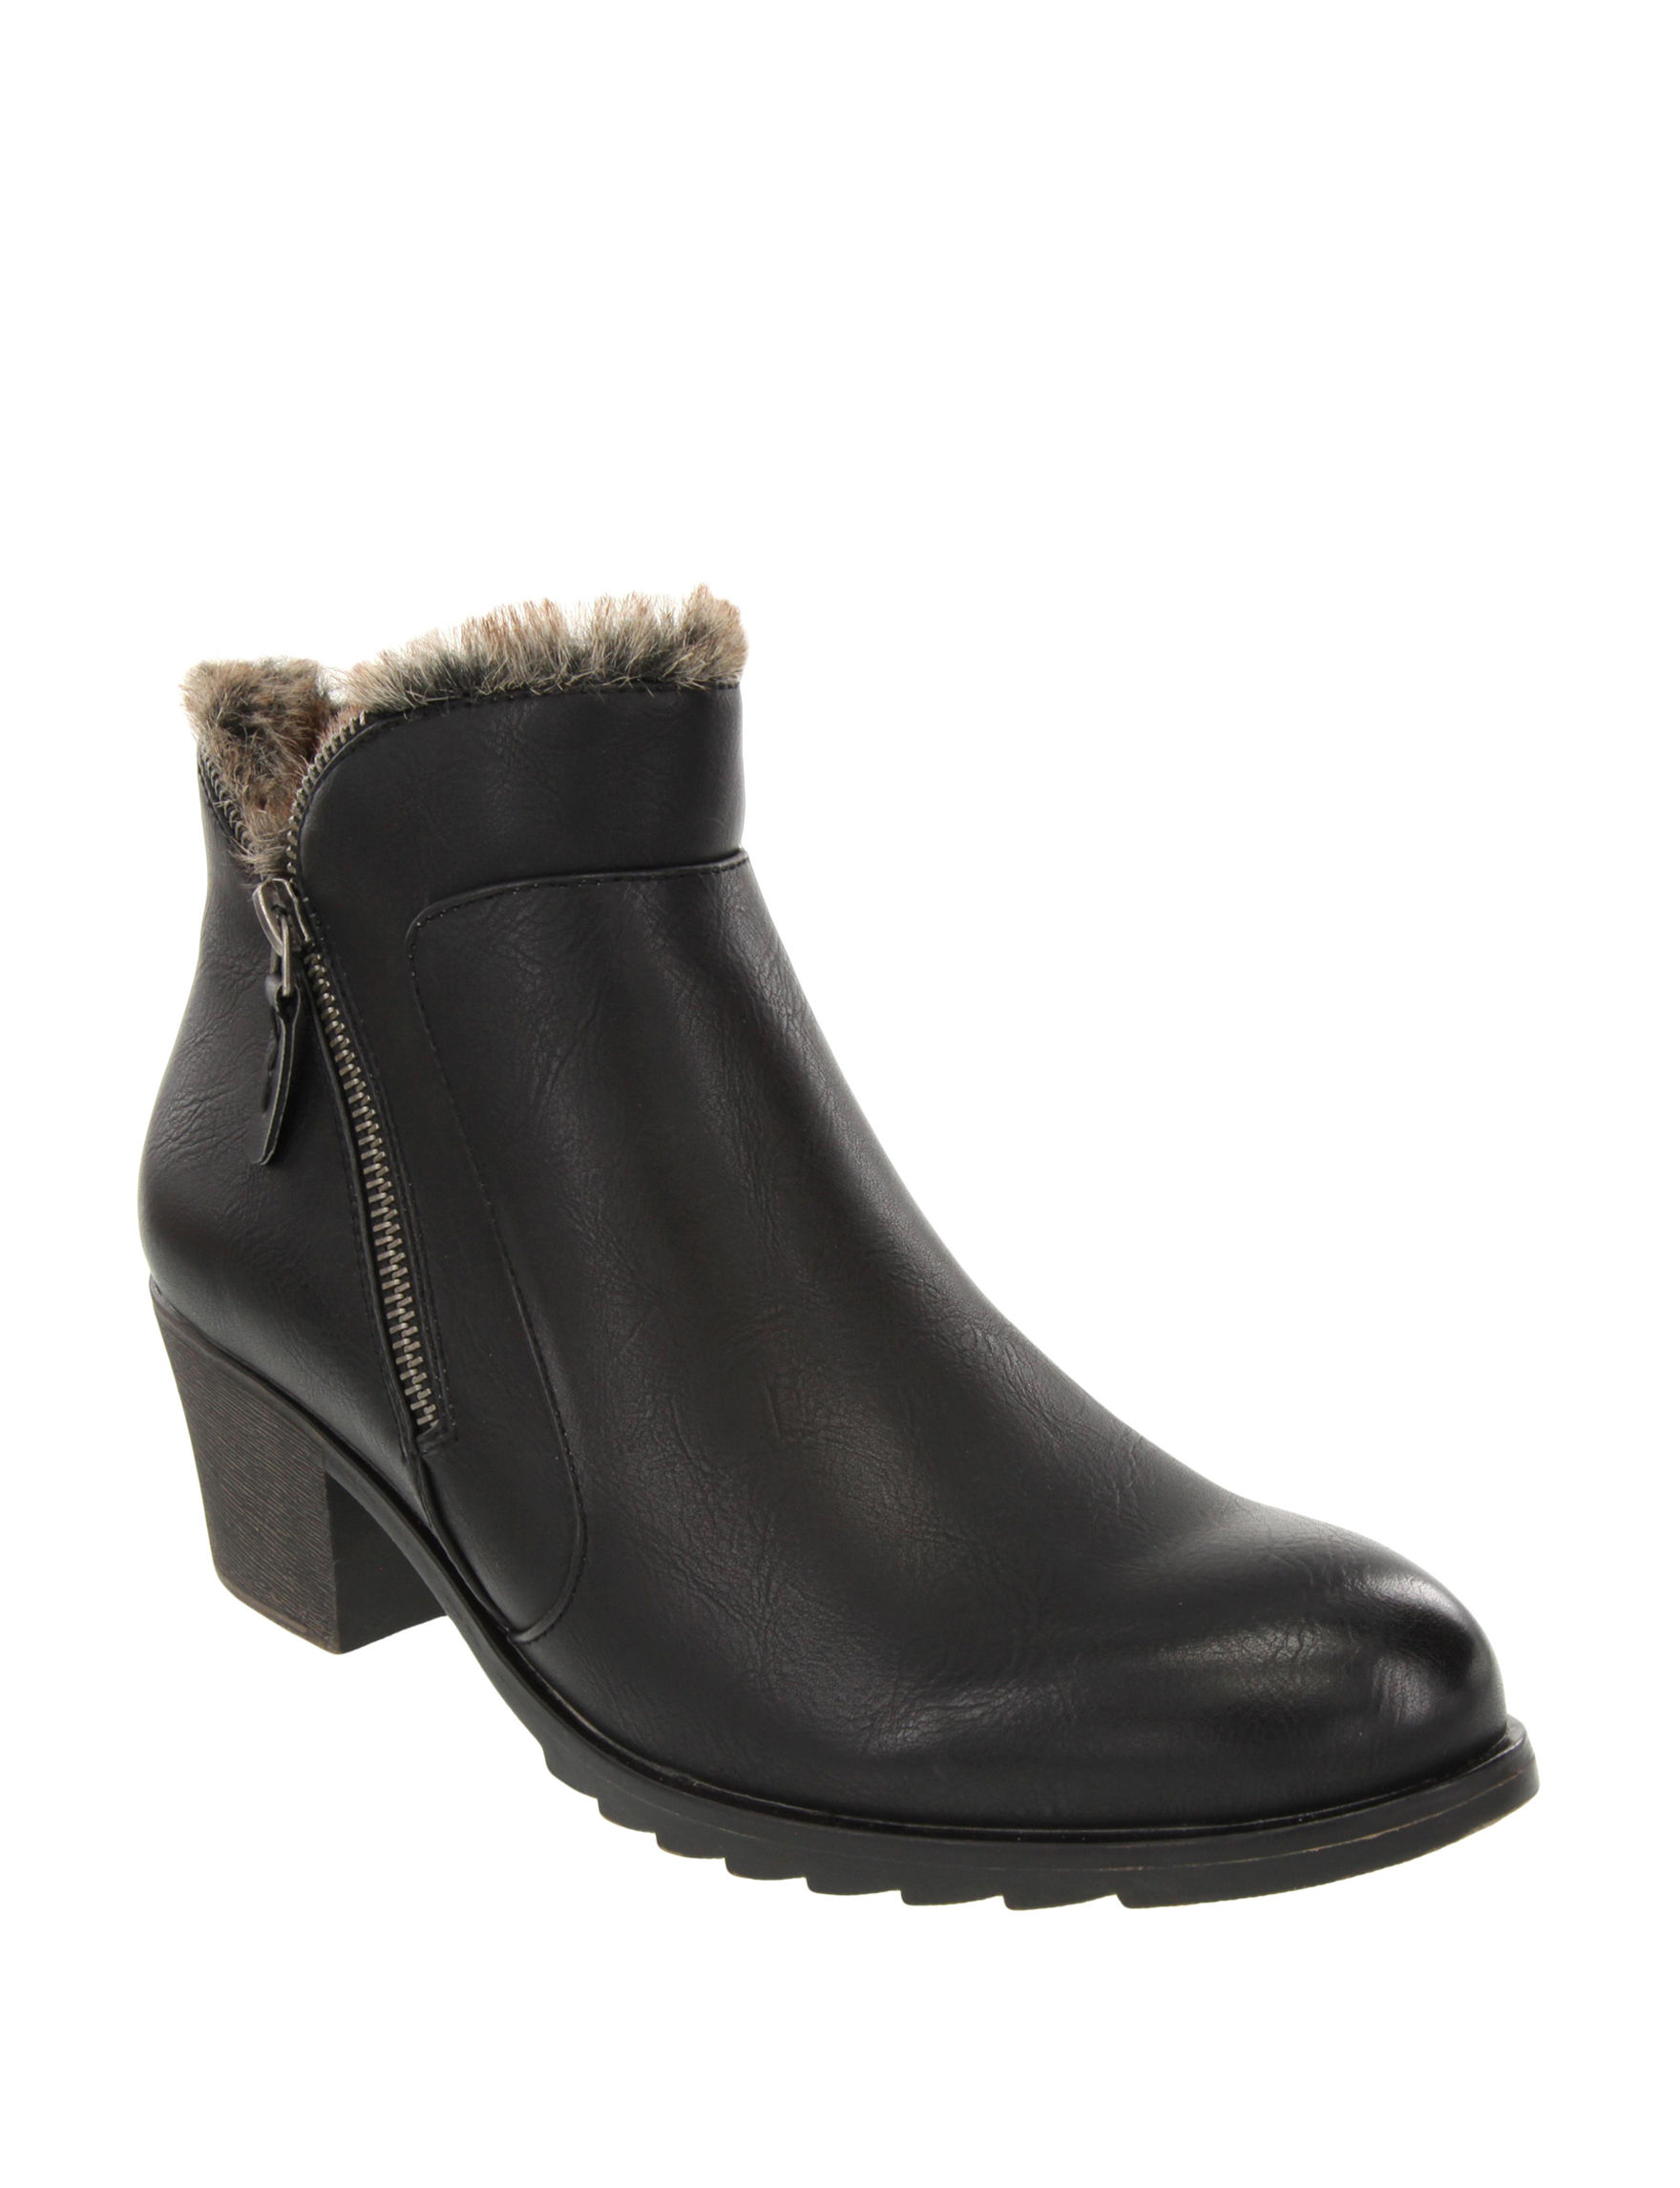 London Fog Black Ankle Boots & Booties Comfort